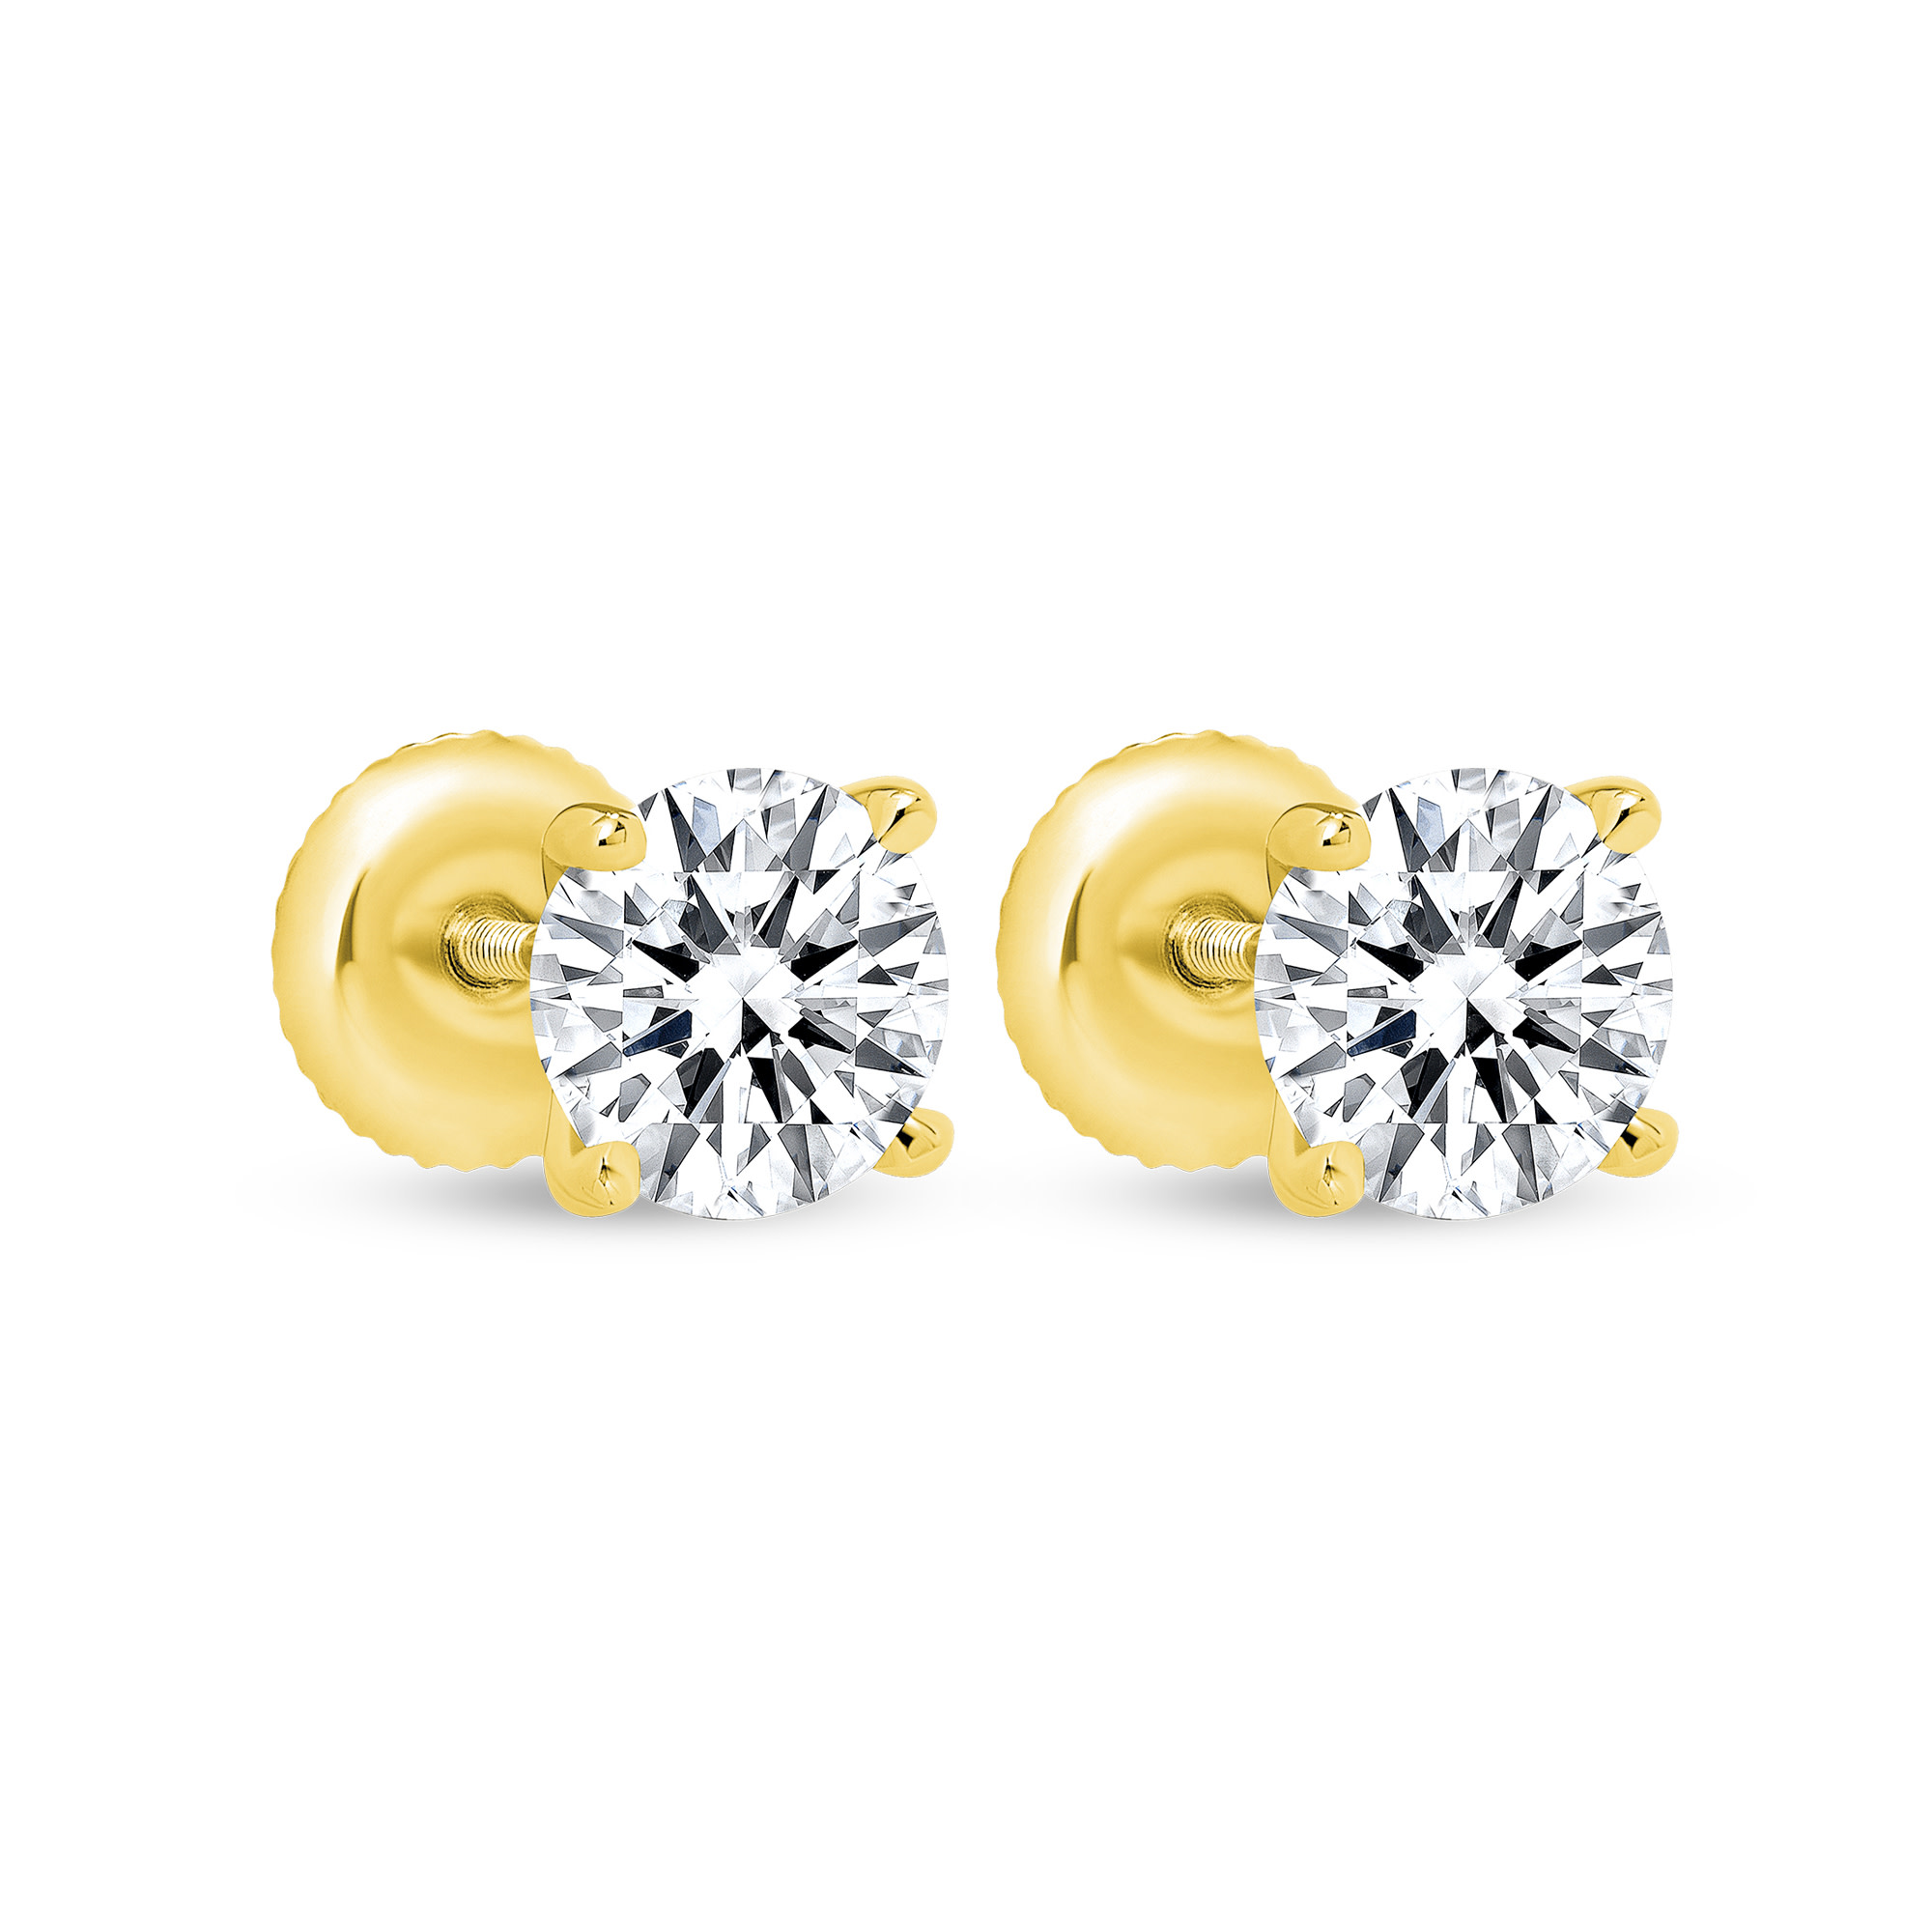 2 carat solitaire diamond earrings | 2 carat round diamond earrings